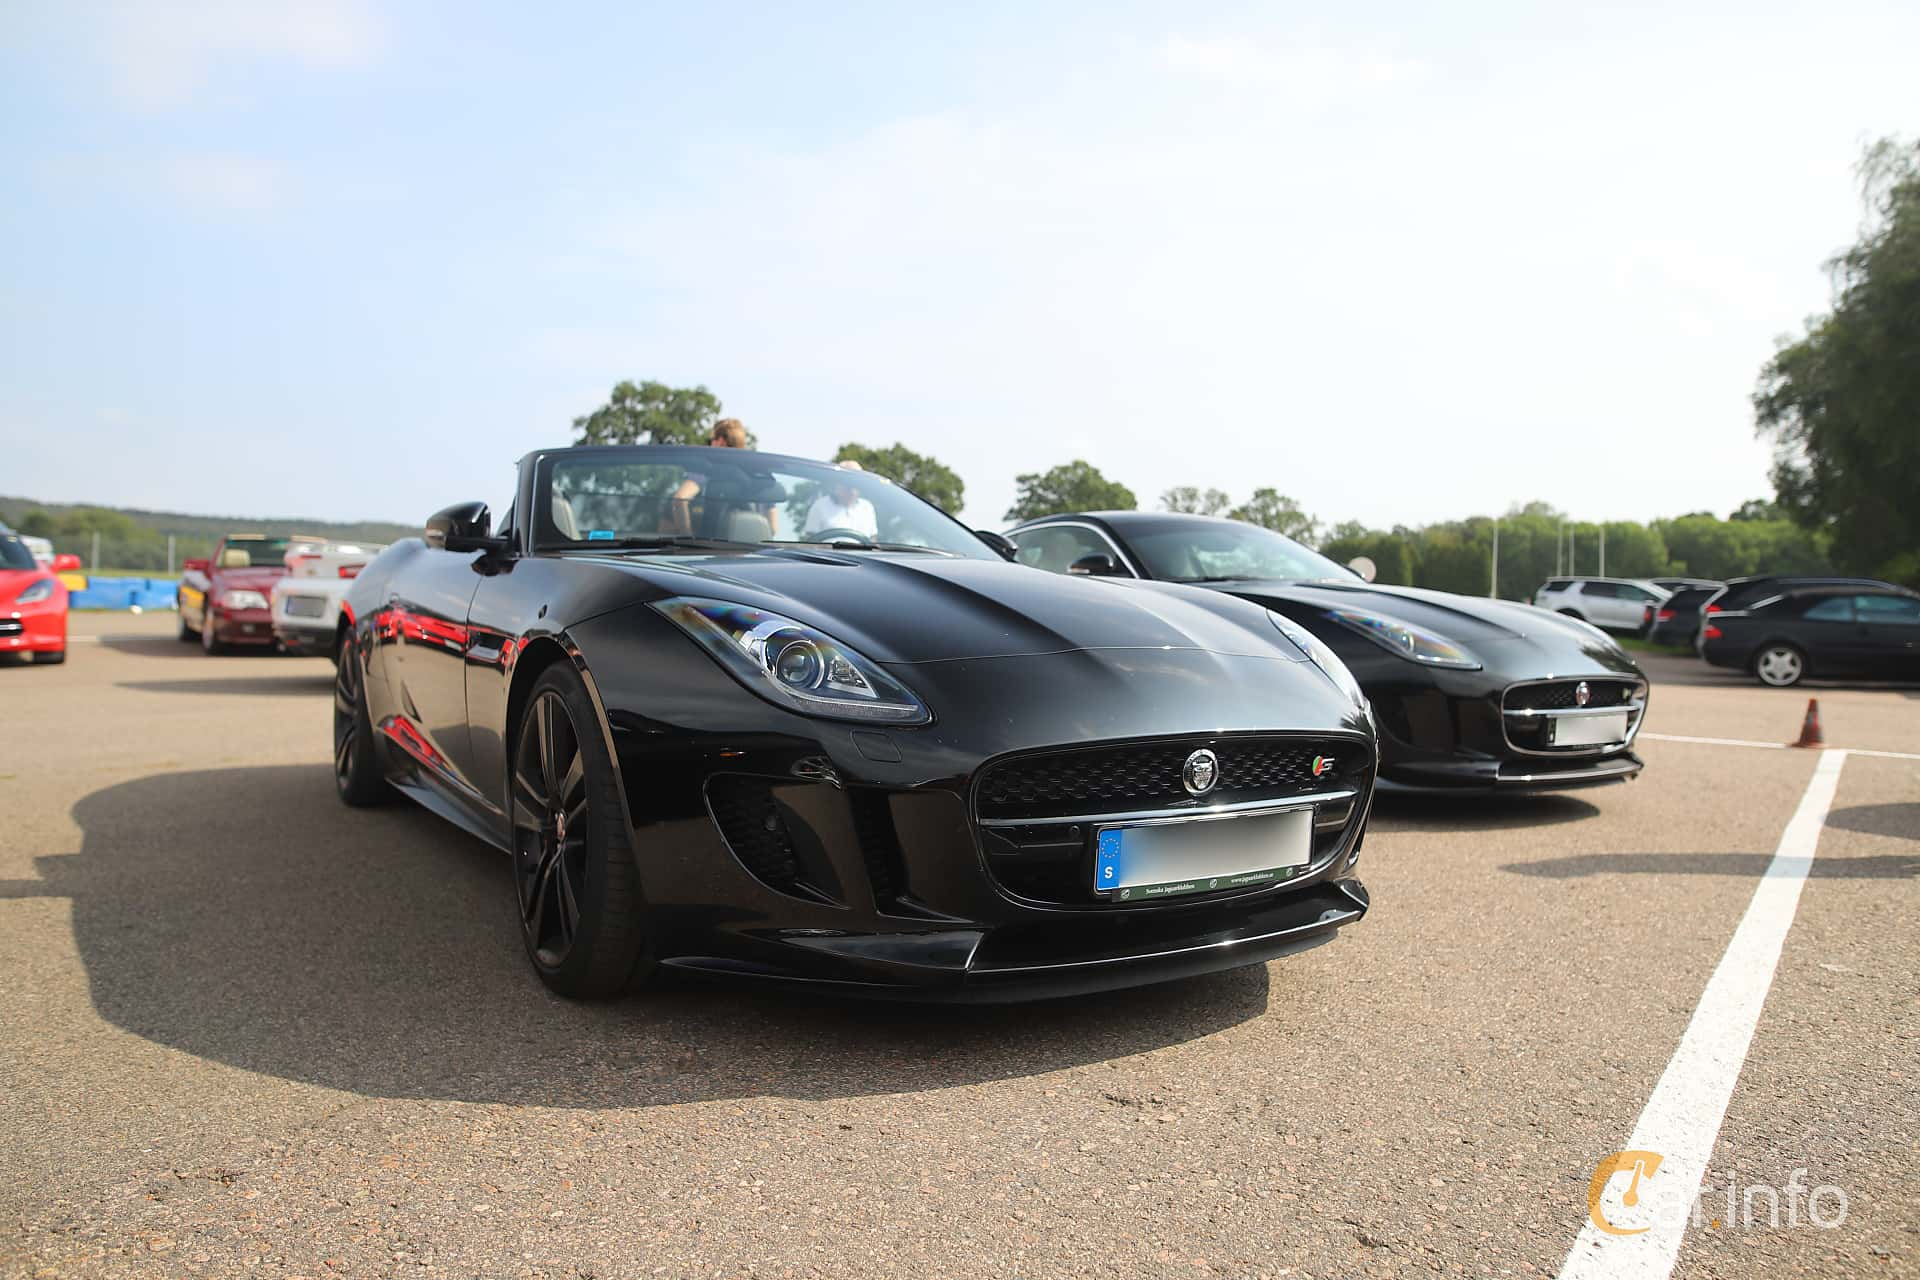 Front/Side  of Jaguar F-Type V8 S Convertible  Automatic, 495ps, 2014 at Autoropa Racing day Knutstorp 2019